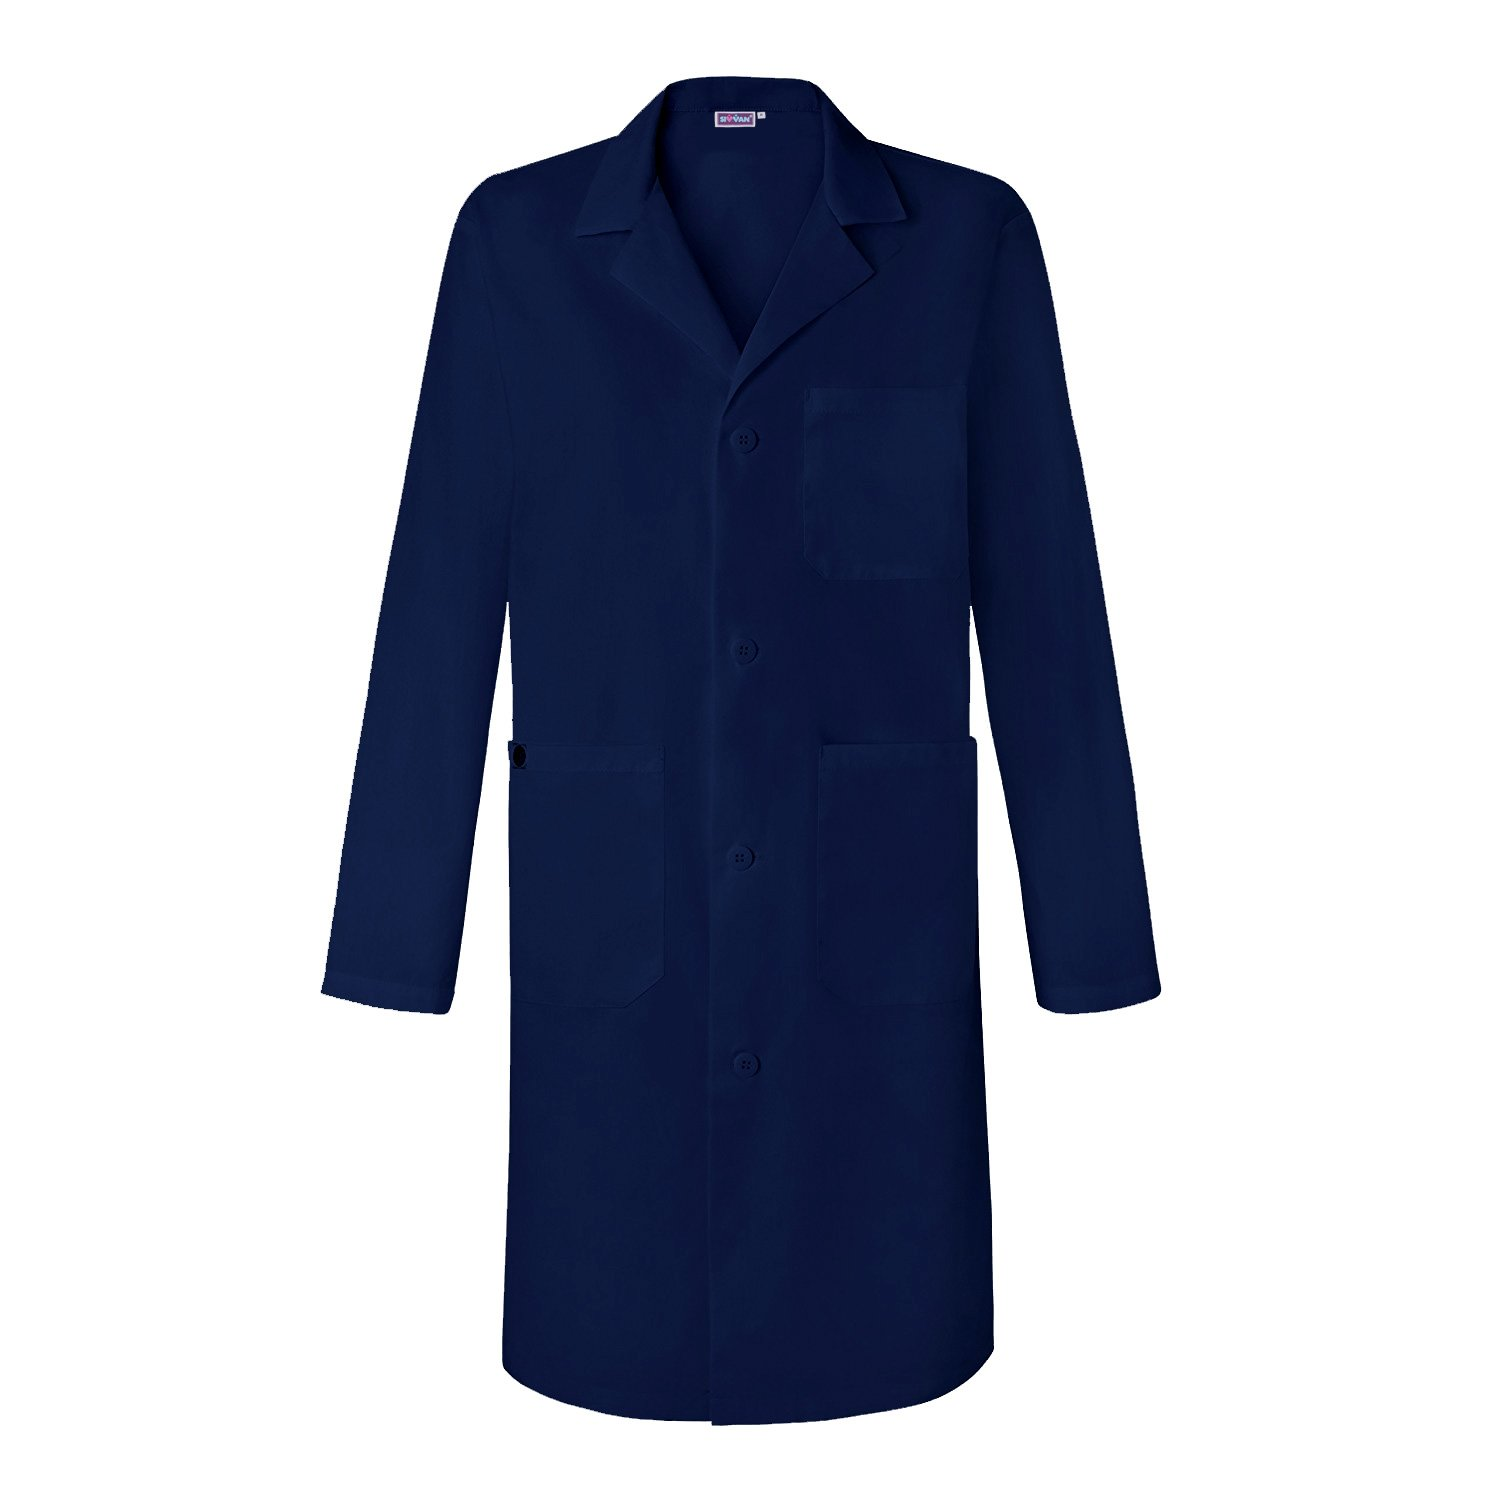 Sivvan Unisex 39 inch Lab Coat - Back Pleated - S8802 - Navy - L